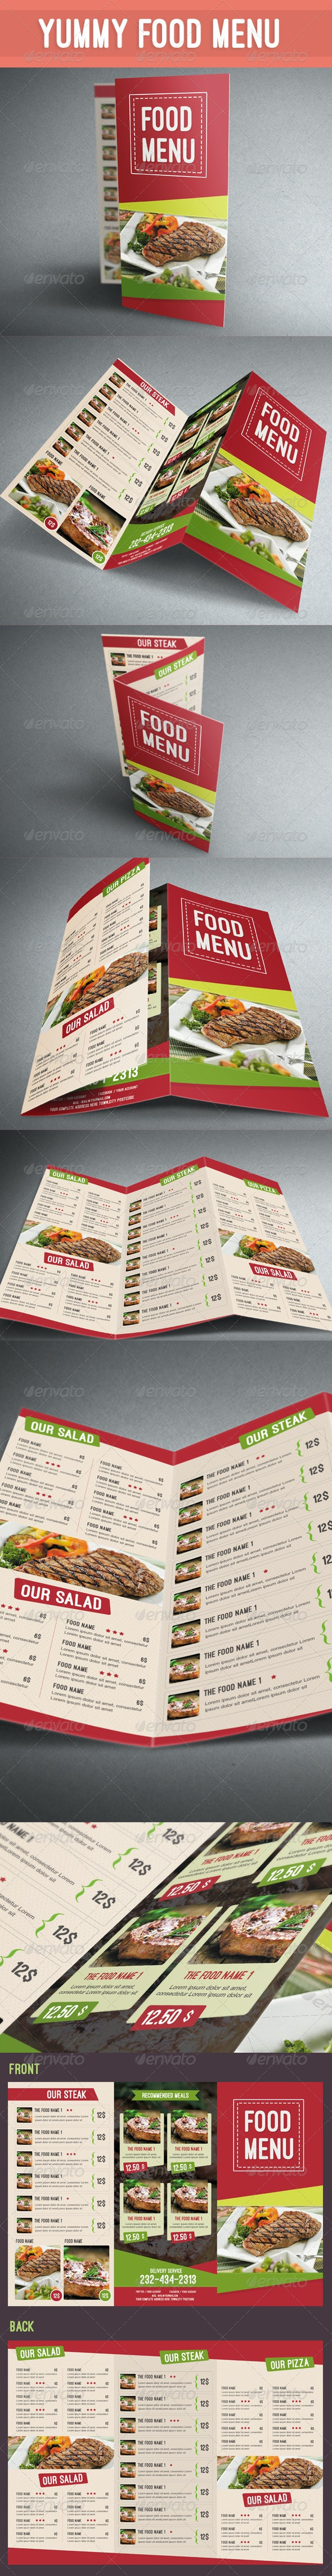 Yummy Food Menu - Food Menus Print Templates